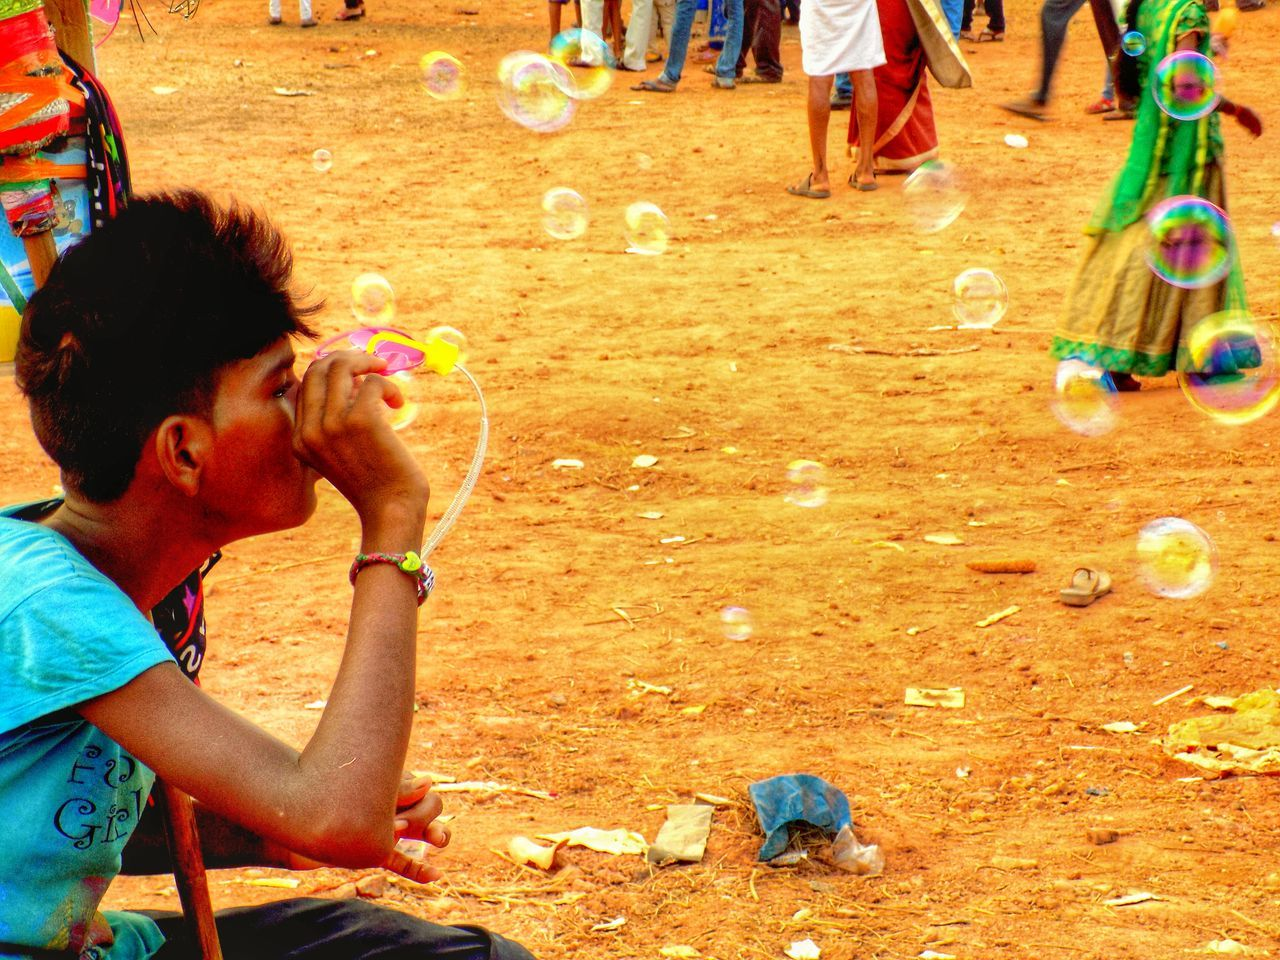 Young Adult People Water Bubbles Streetphotography Street Photography Street Life Nikonl330 EyeEm Best Shots EyeEm Gallery Eyeem India Puttur India Karnataka Capture The Moment Showing Imperfection